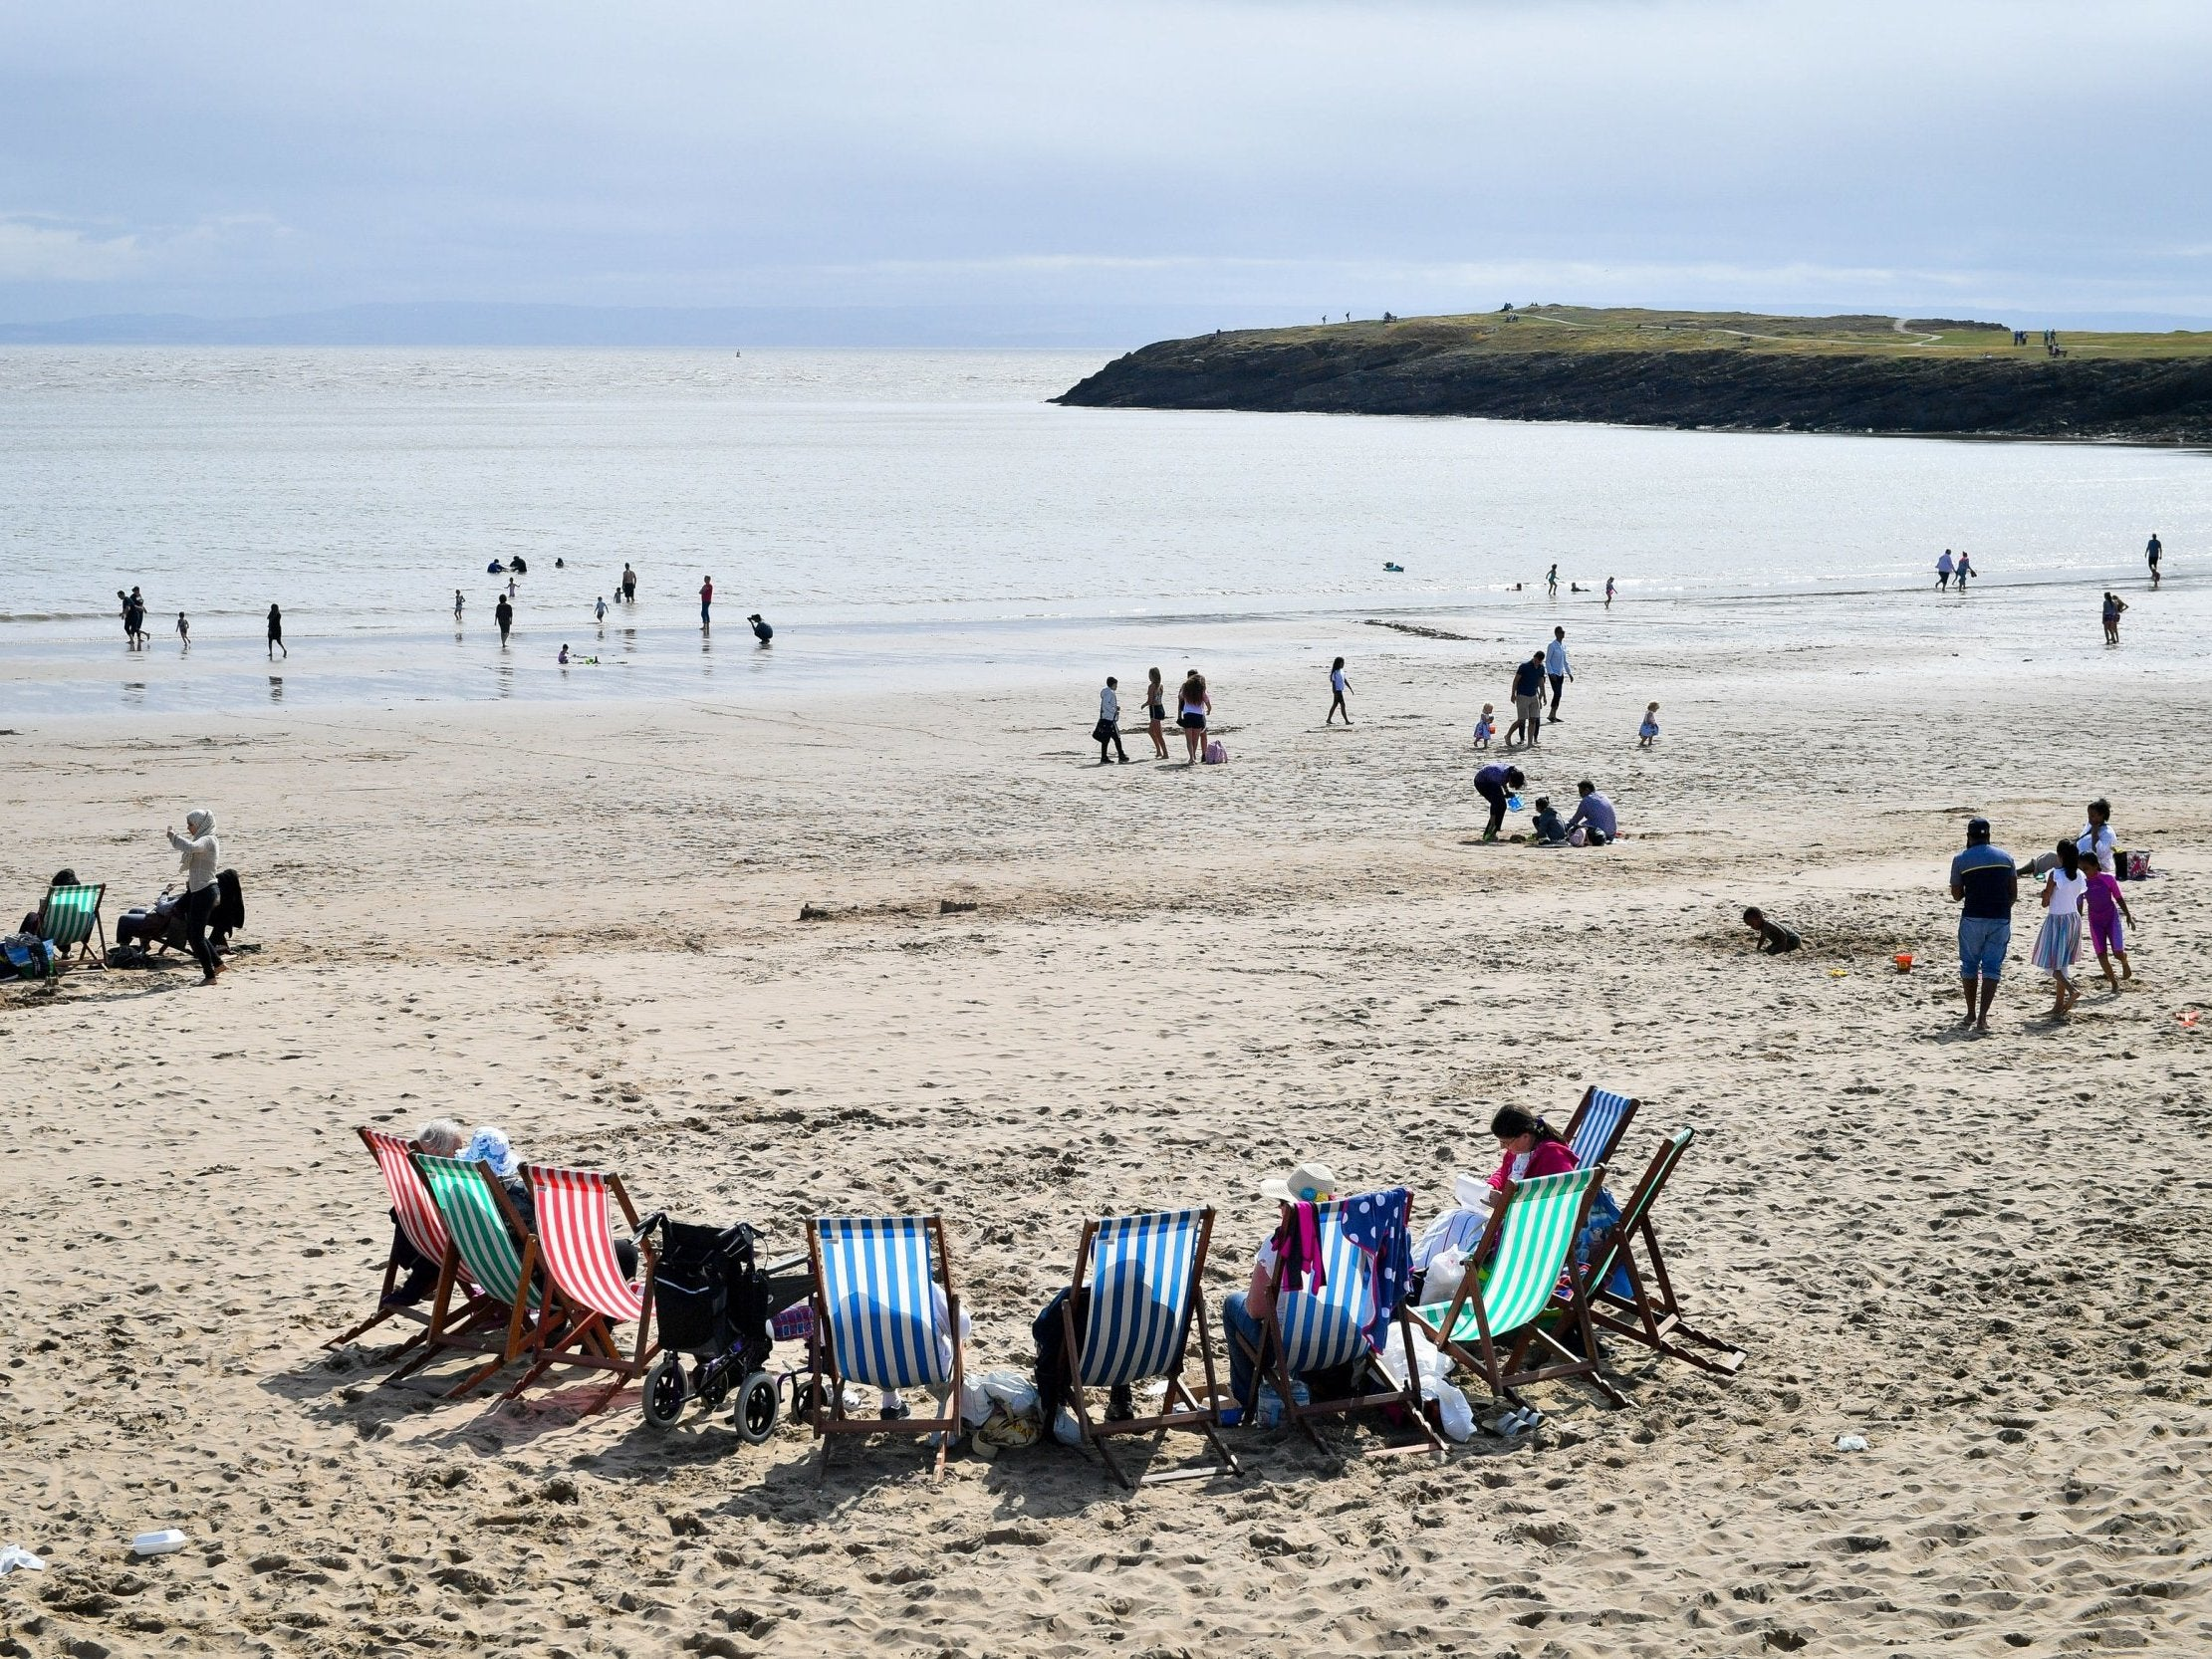 e1568426ef UK weather: Sun to return to Britain but will bring sticky and muggy  temperatures | The Independent